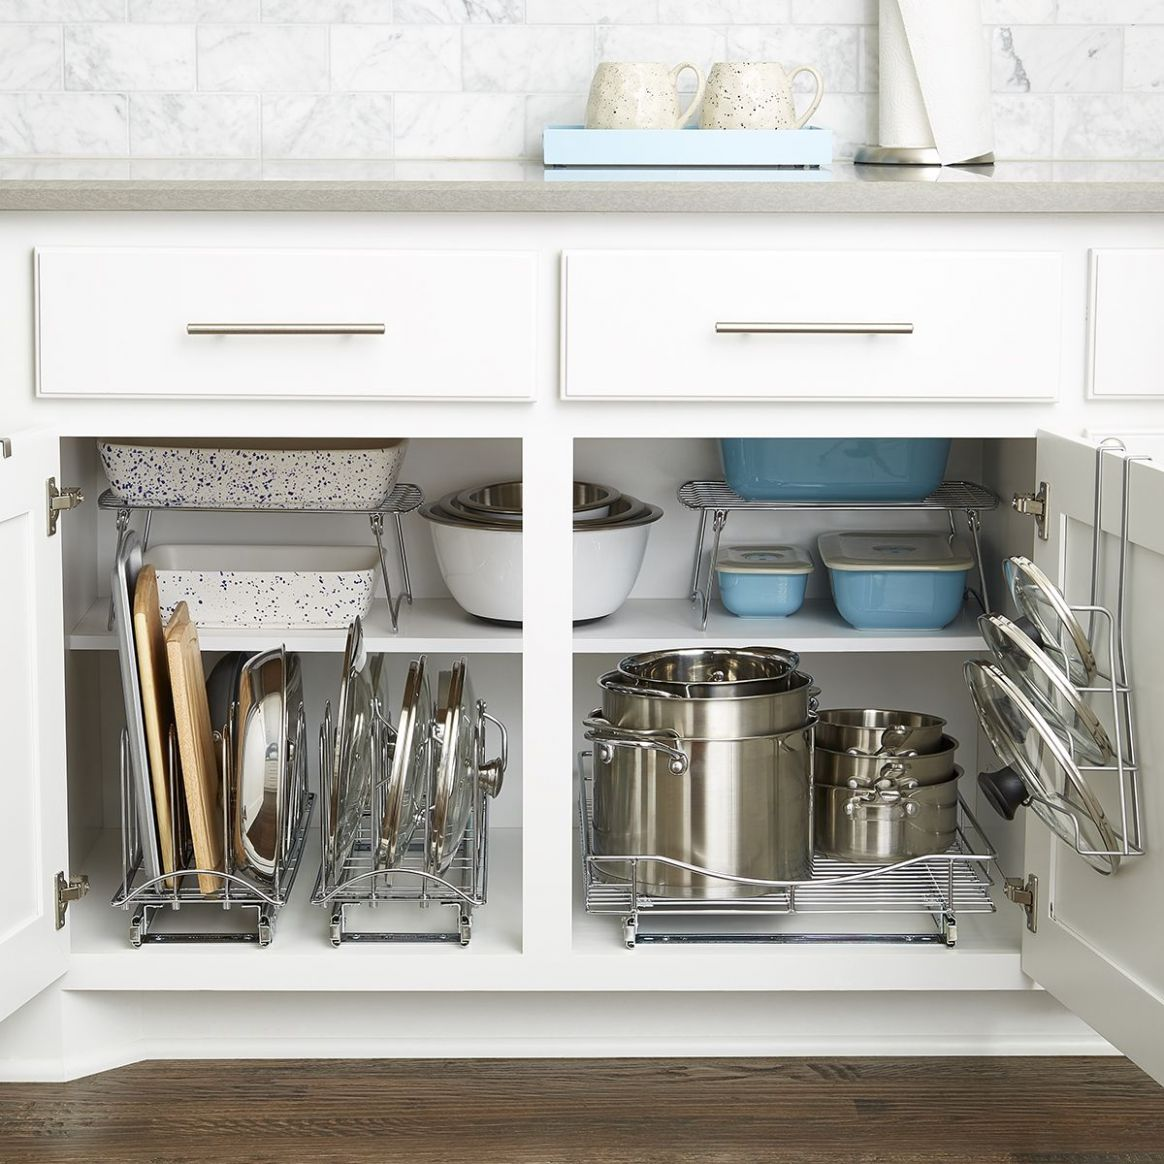 Organize Your Kitchen Like A Professional (With images) | Diy ..